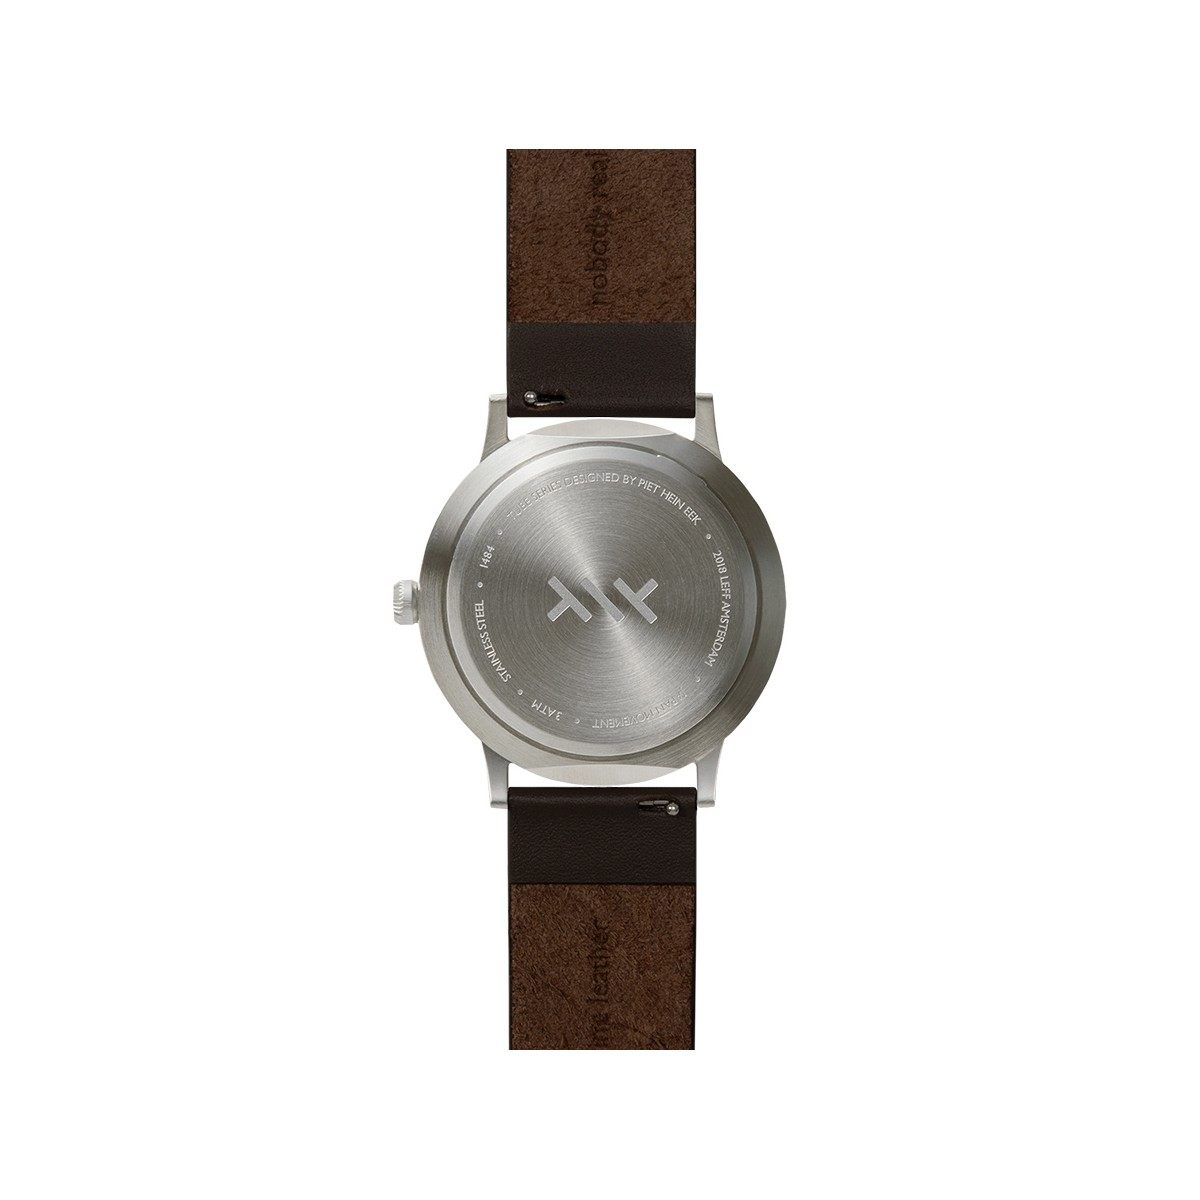 a63d81839 ... Leff Amsterdam Tube Watch T40 Steel / Leather Brown